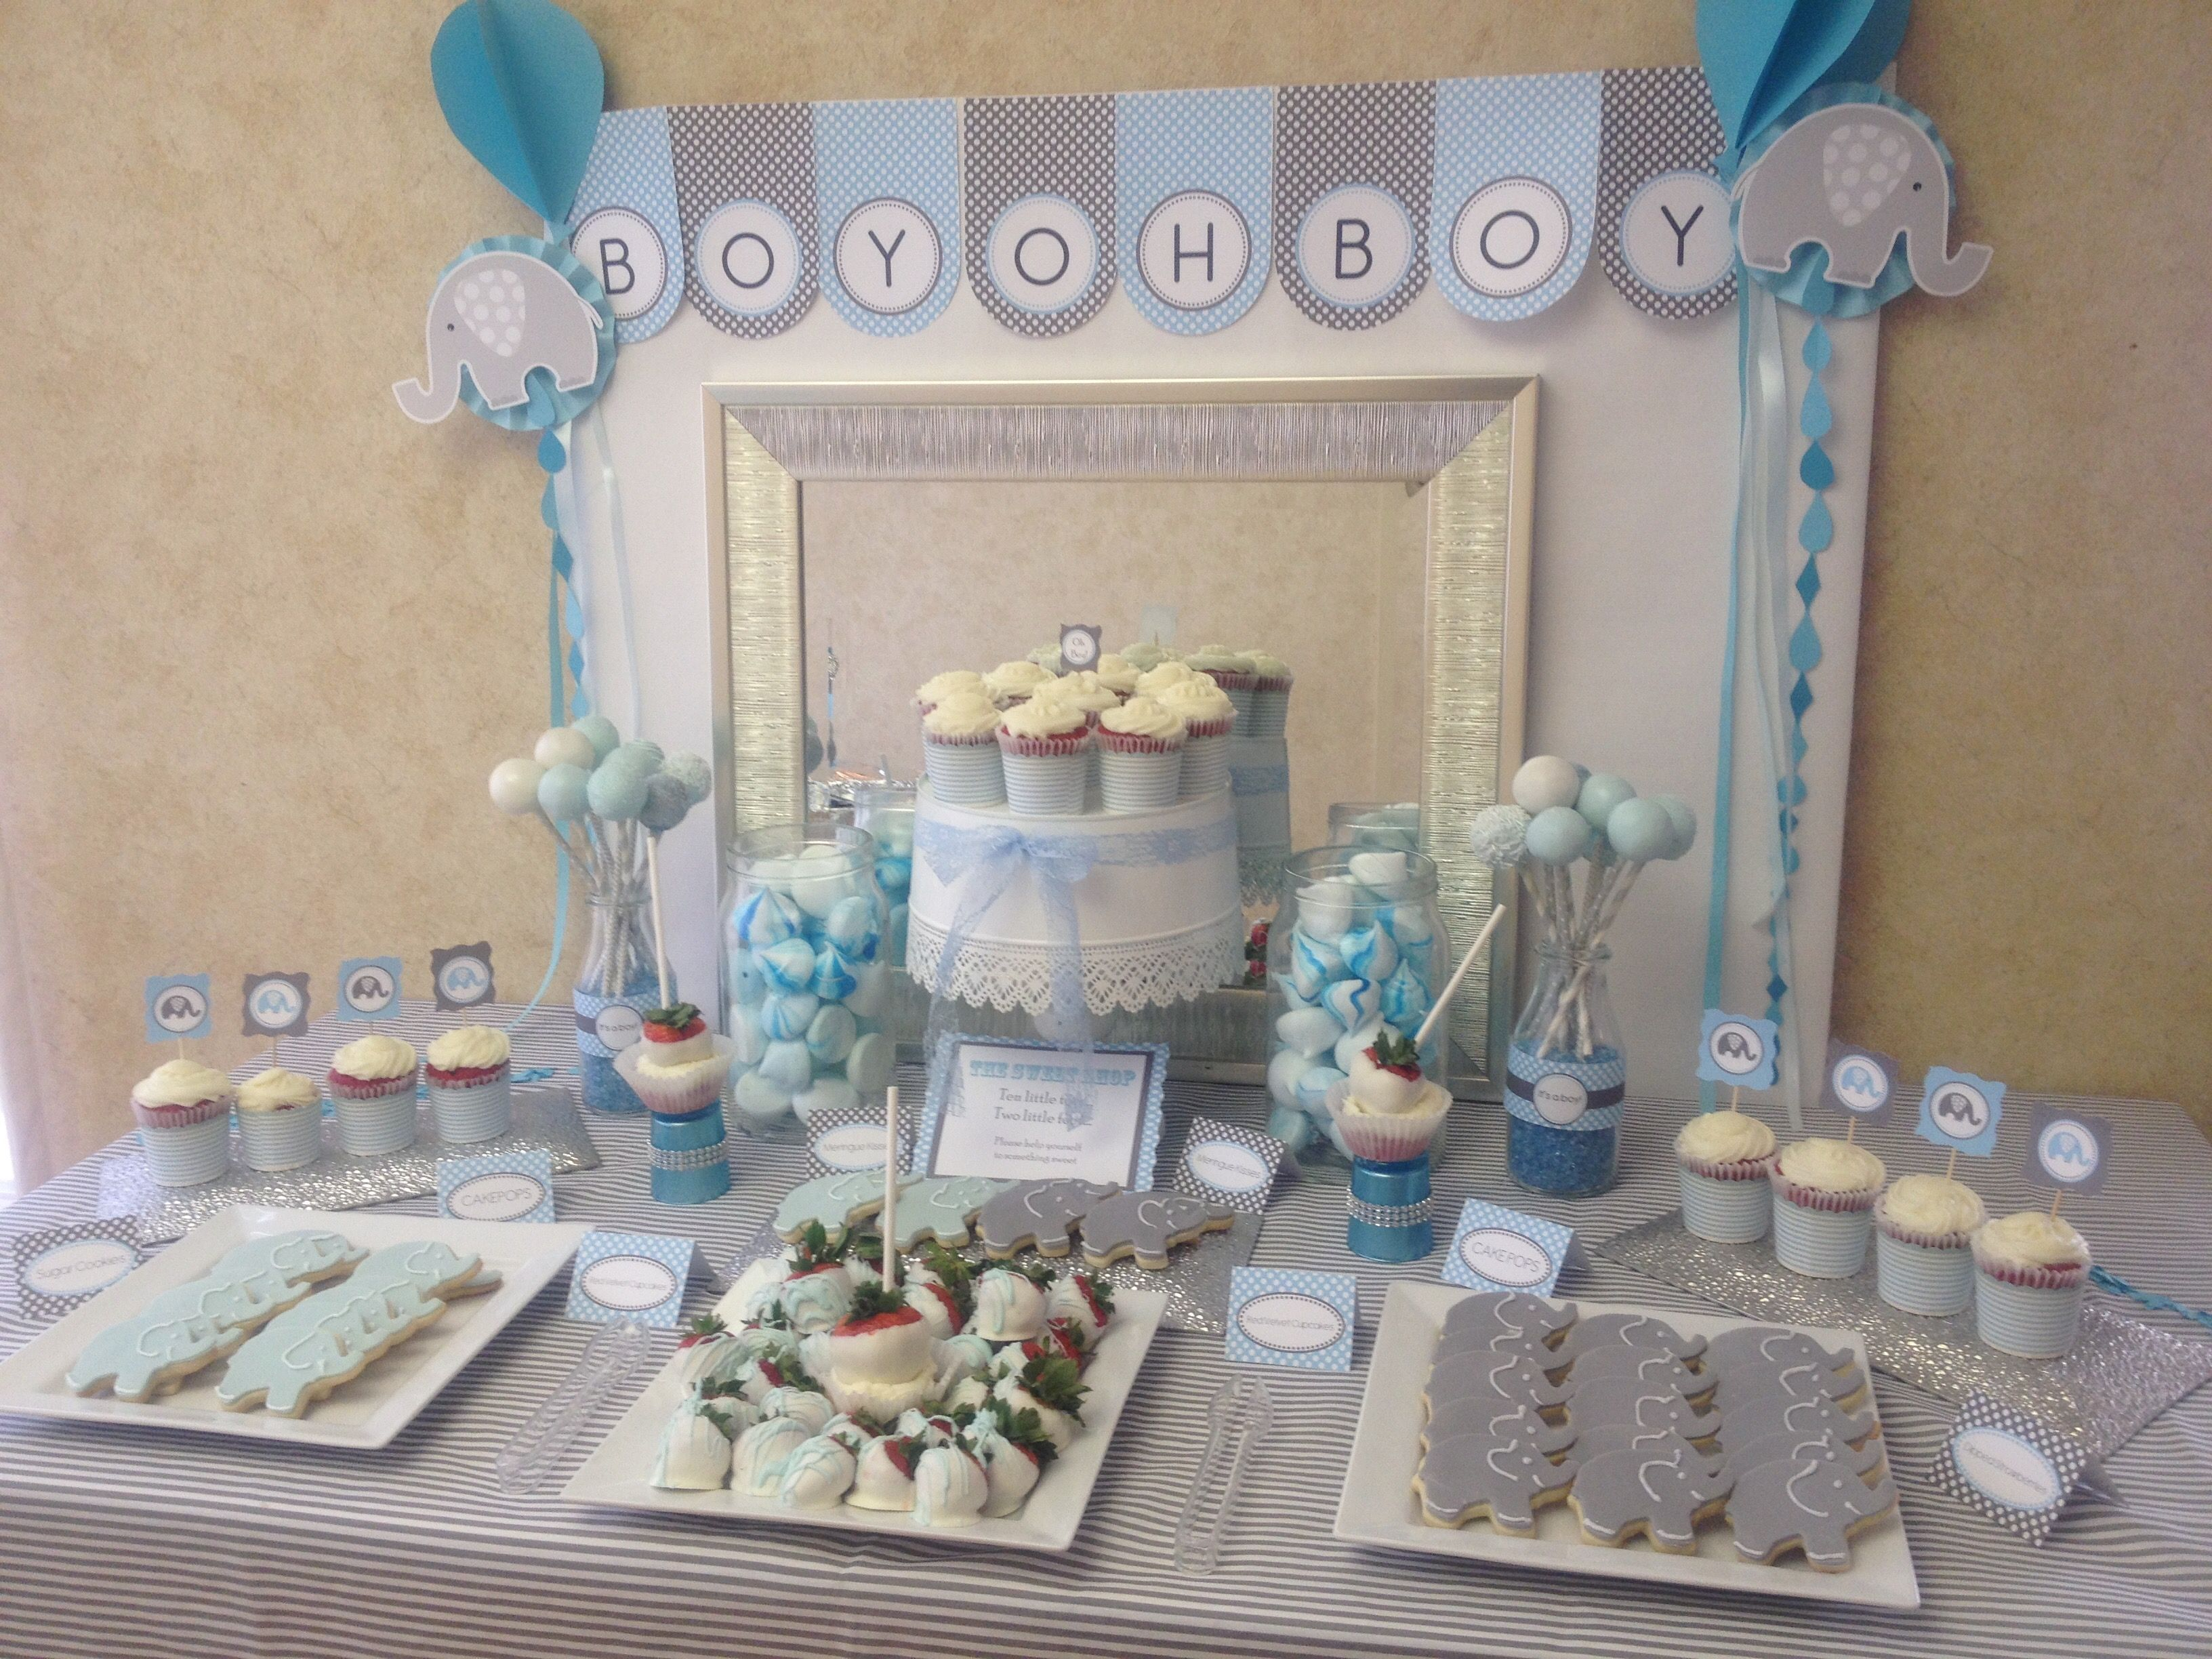 Awesome Boys Baby Shower Dessert Table, Elephant Blue And Gray Themed, Designed By  Myself And @CristinaDaSilva